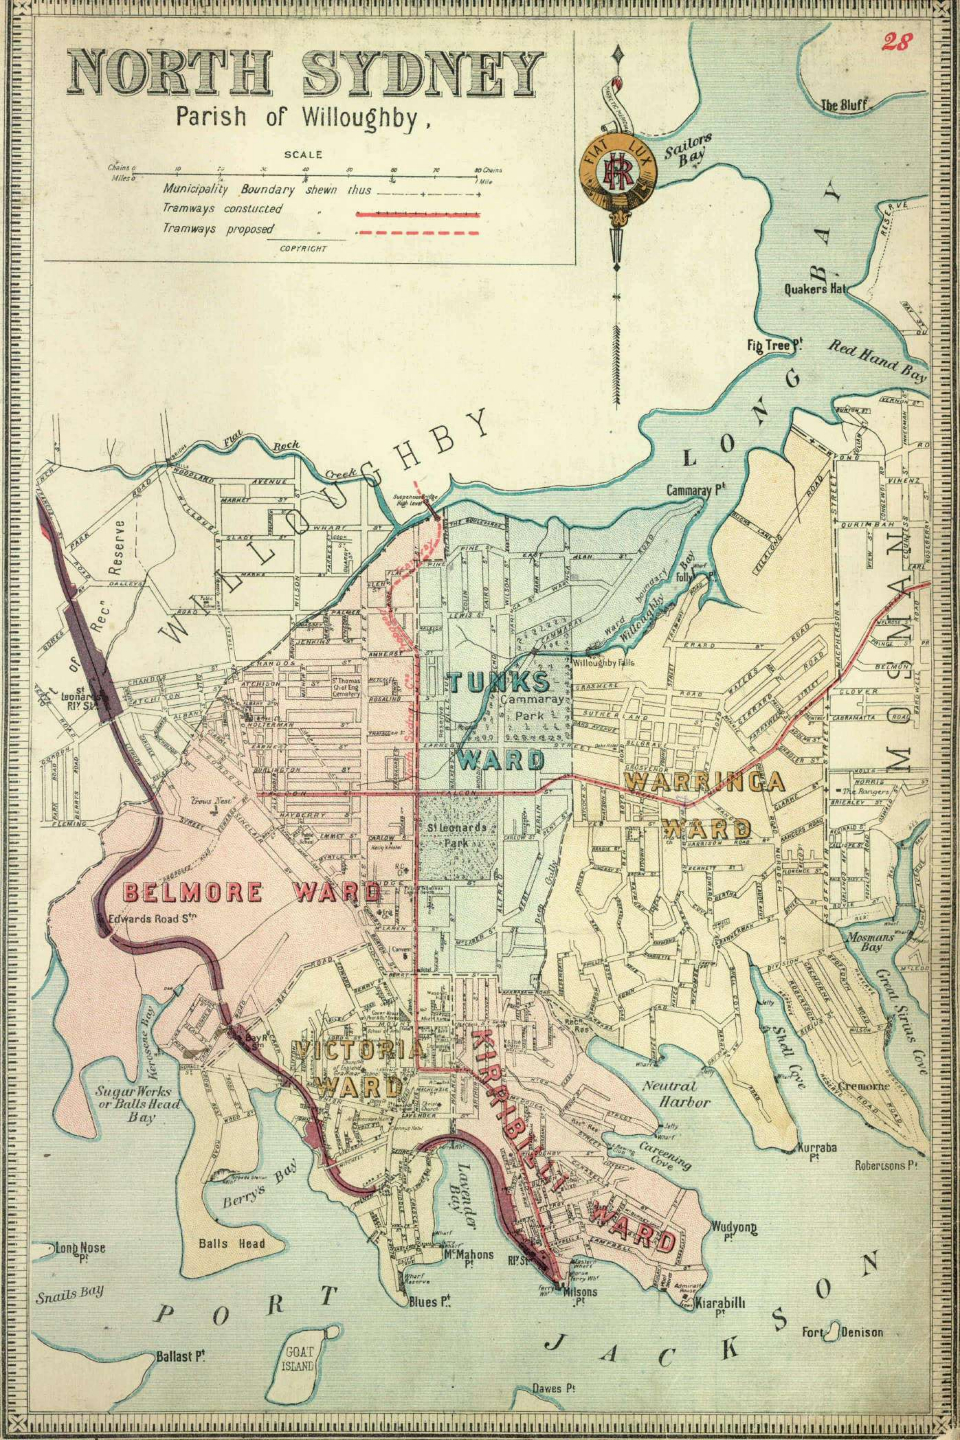 Atlas Suburbs of Sydney 1893-94